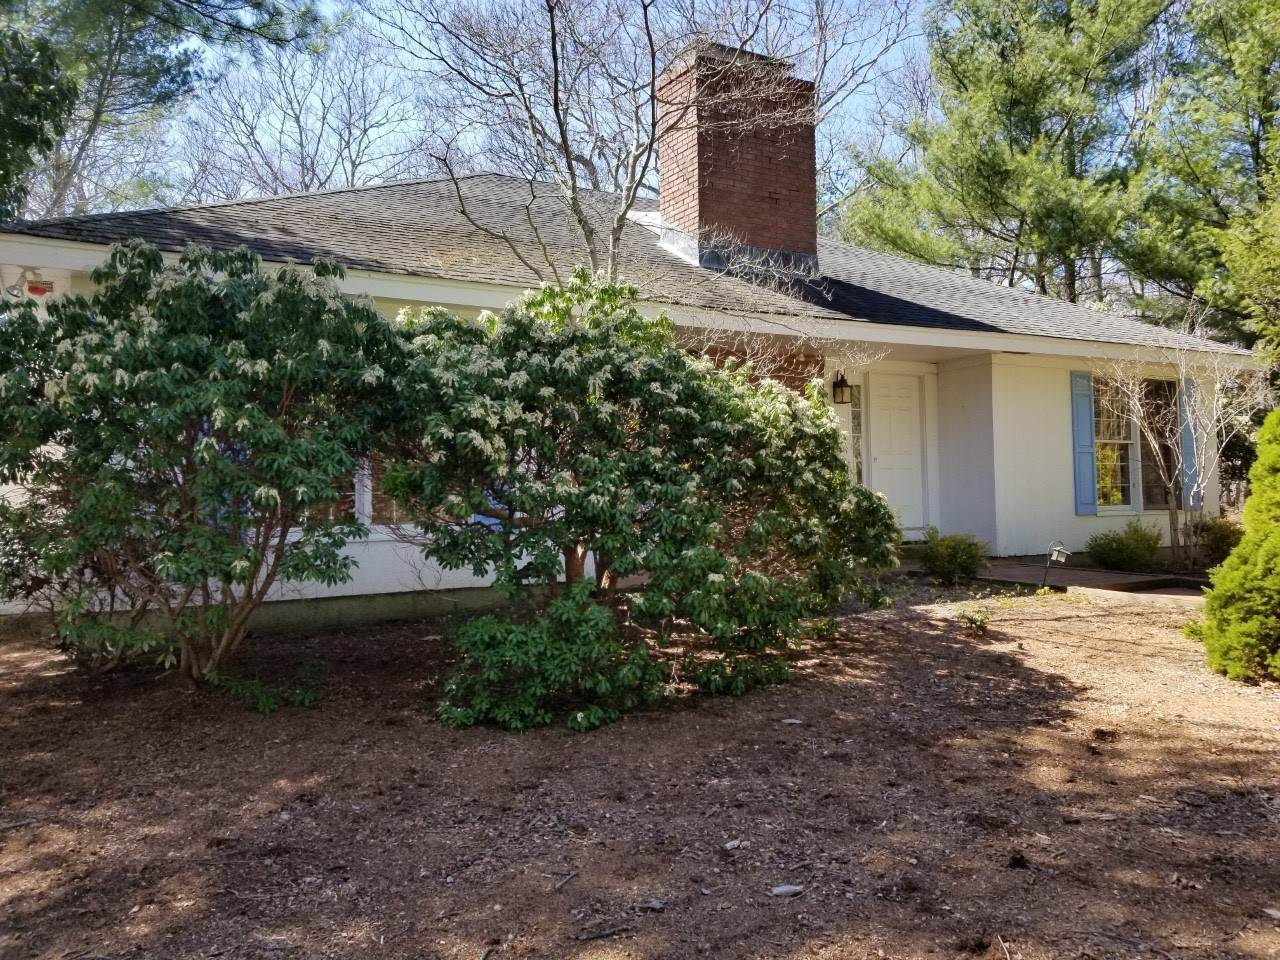 Single Family Home for Sale at Investment Opportunity With Water Access 9 Longboat Ln, East Hampton, NY 11937